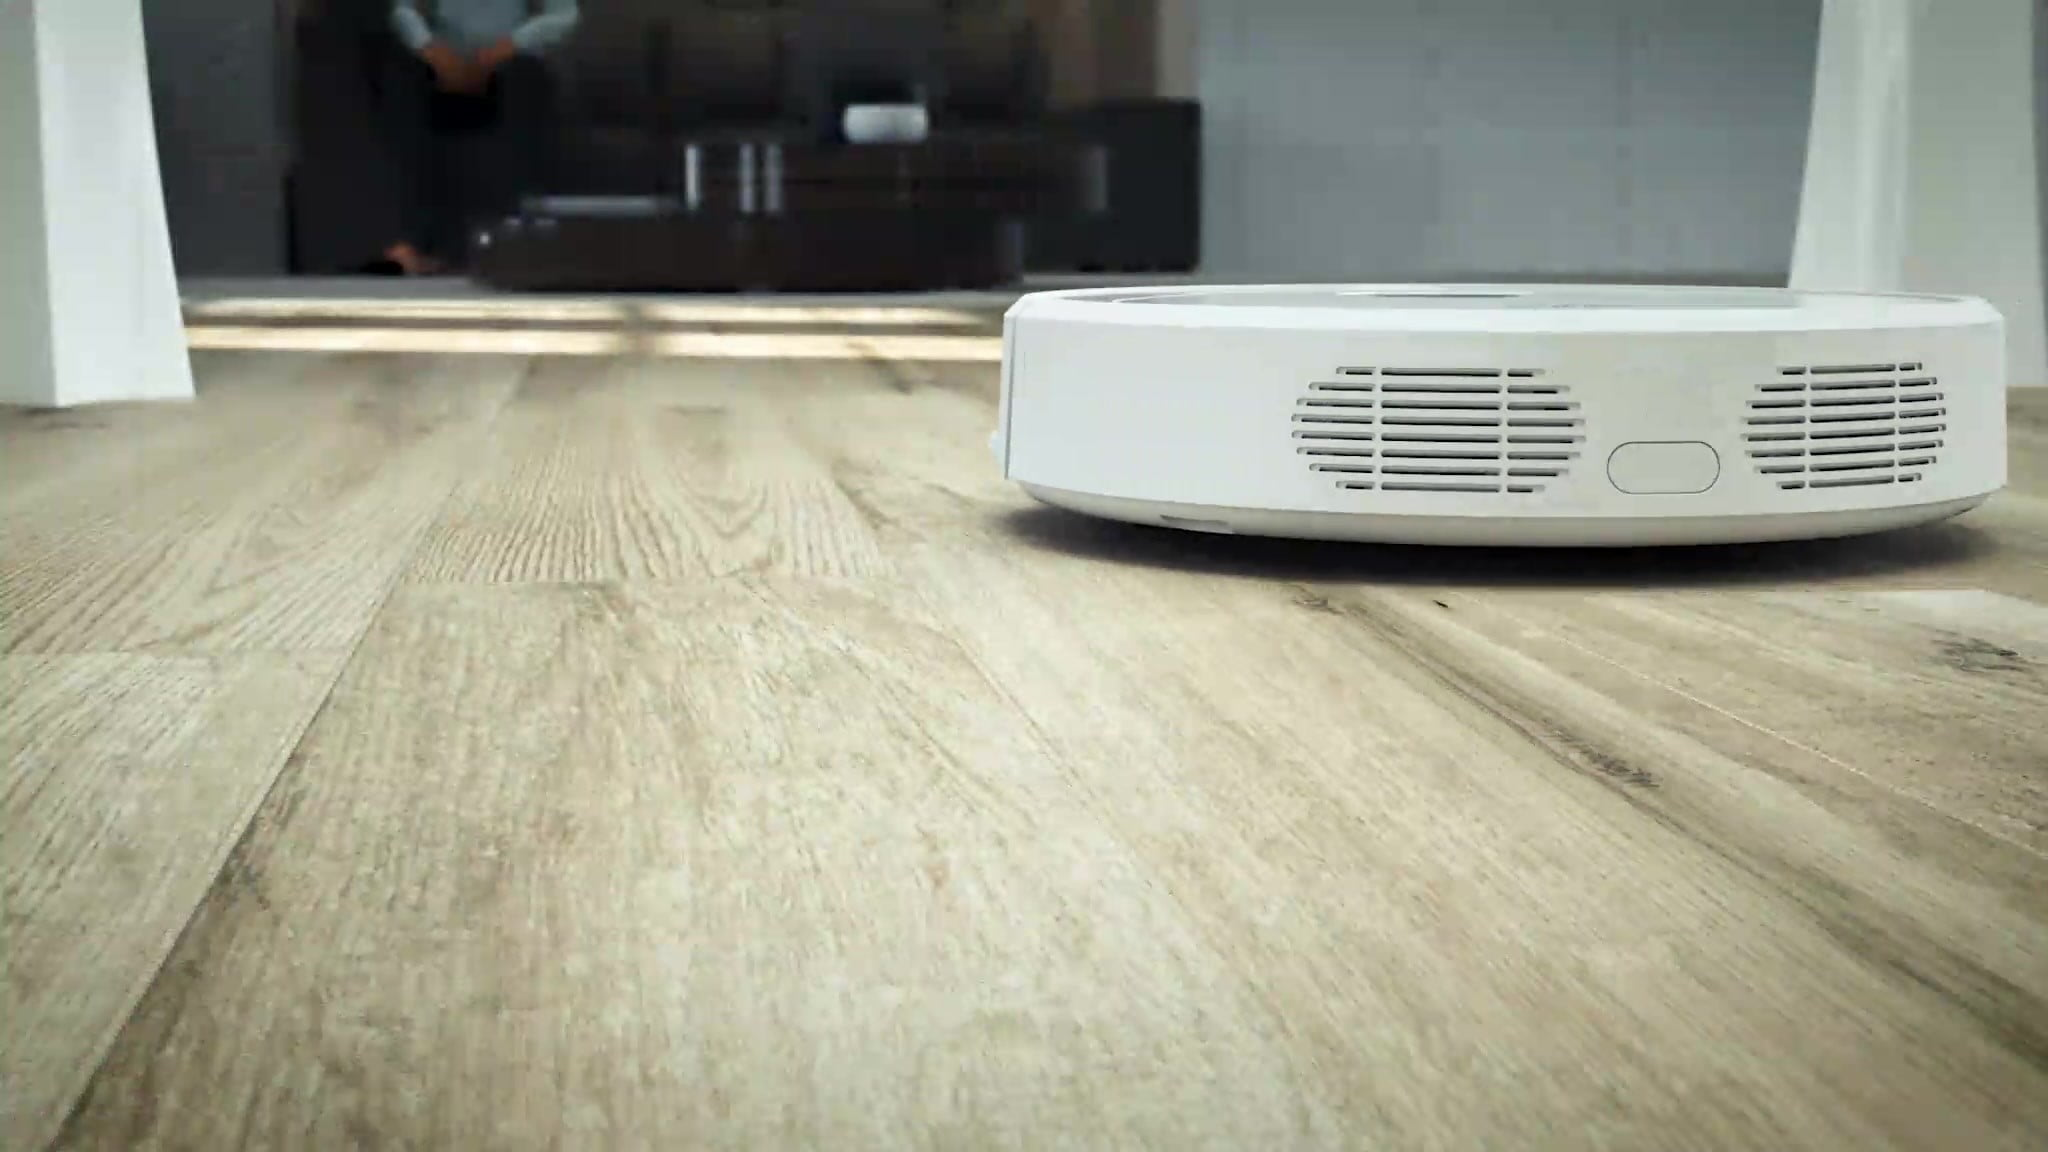 Trifo's new Max is an A.I. robot vacuum and a guard dog in one